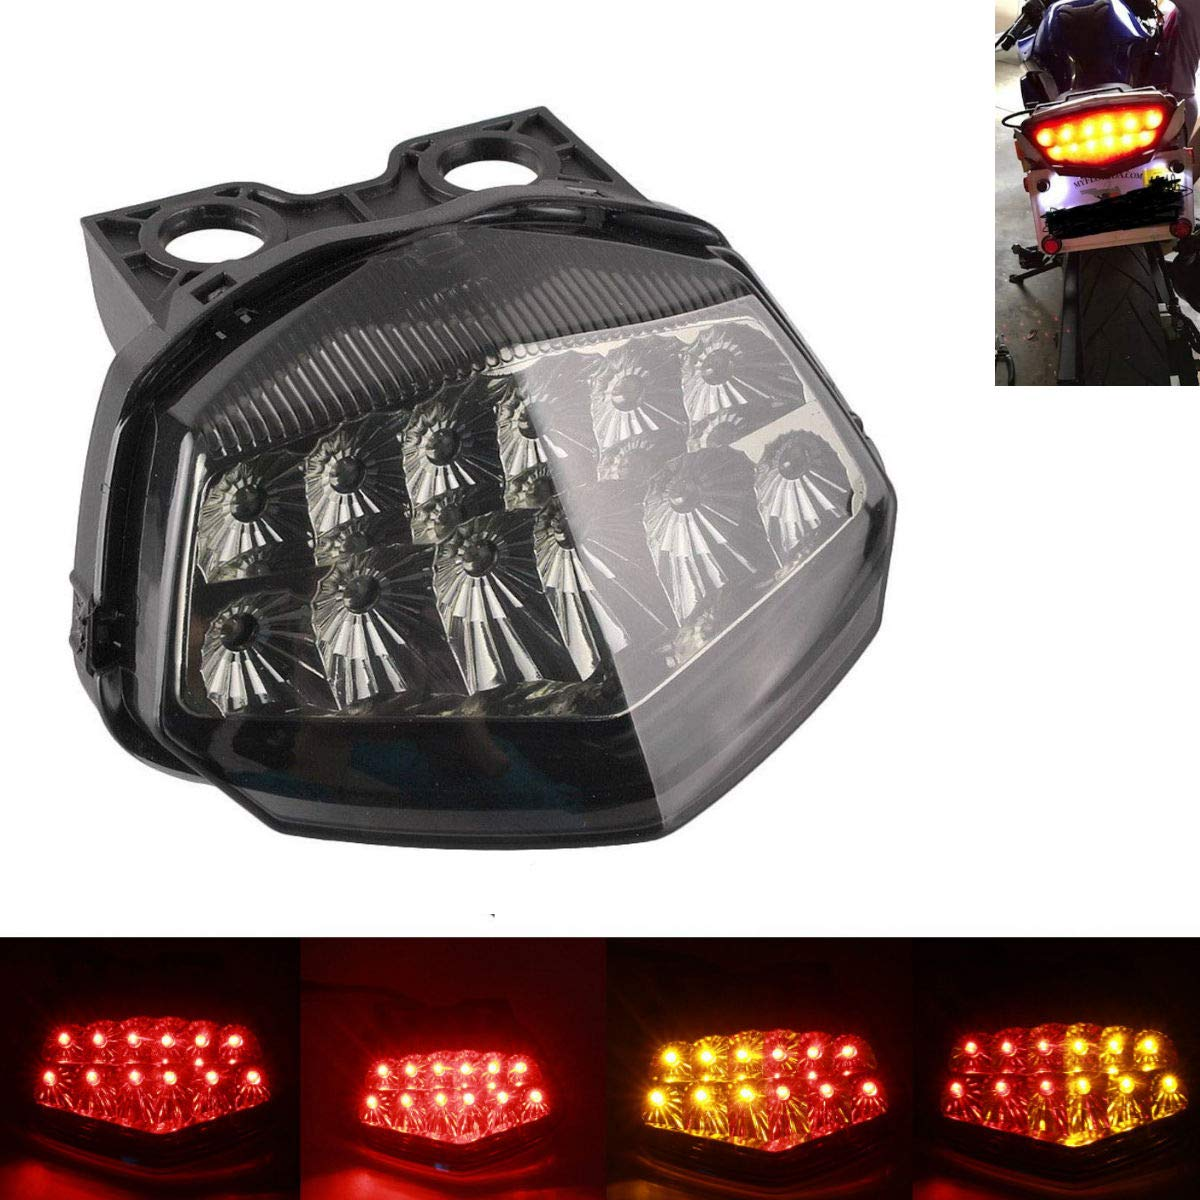 MZS Tail Light Turn Signal LED Integrated Blinker for Kawasaki Ninja 250R Ninja250R EX250 2008 2009 2010 2011 2012 Smoke